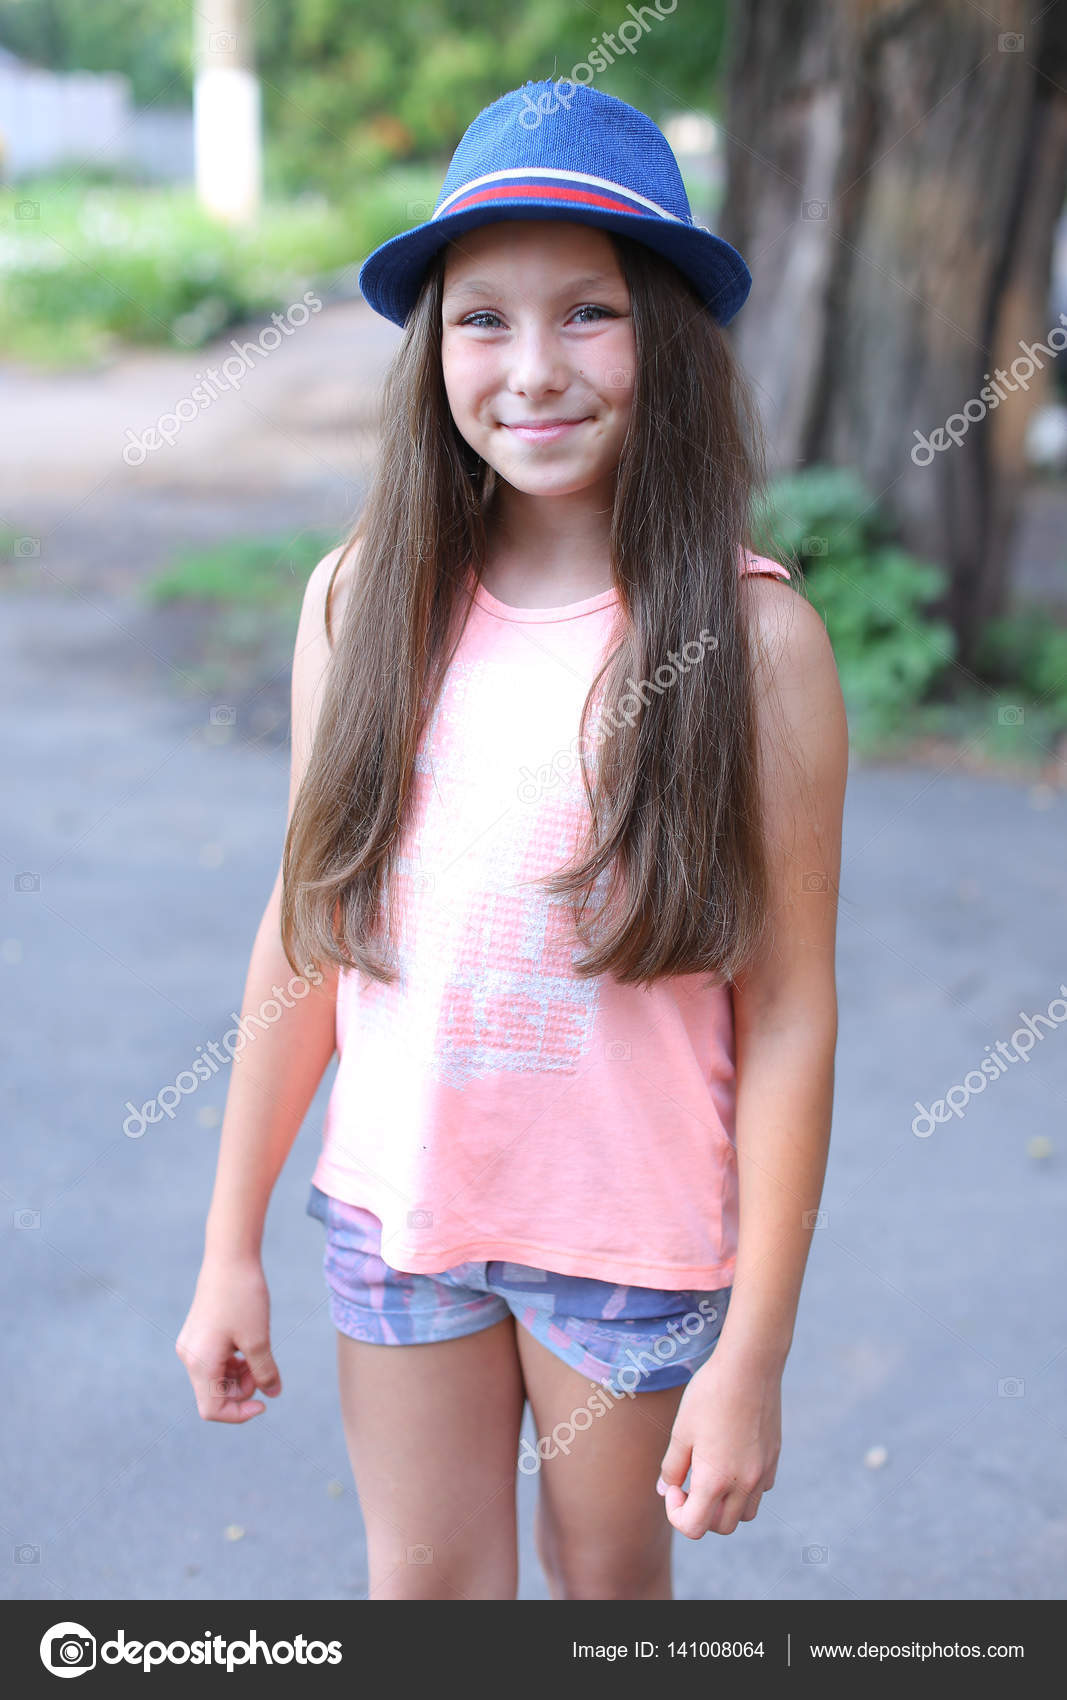 cute girl child smiling, looking at the camera and standing on s